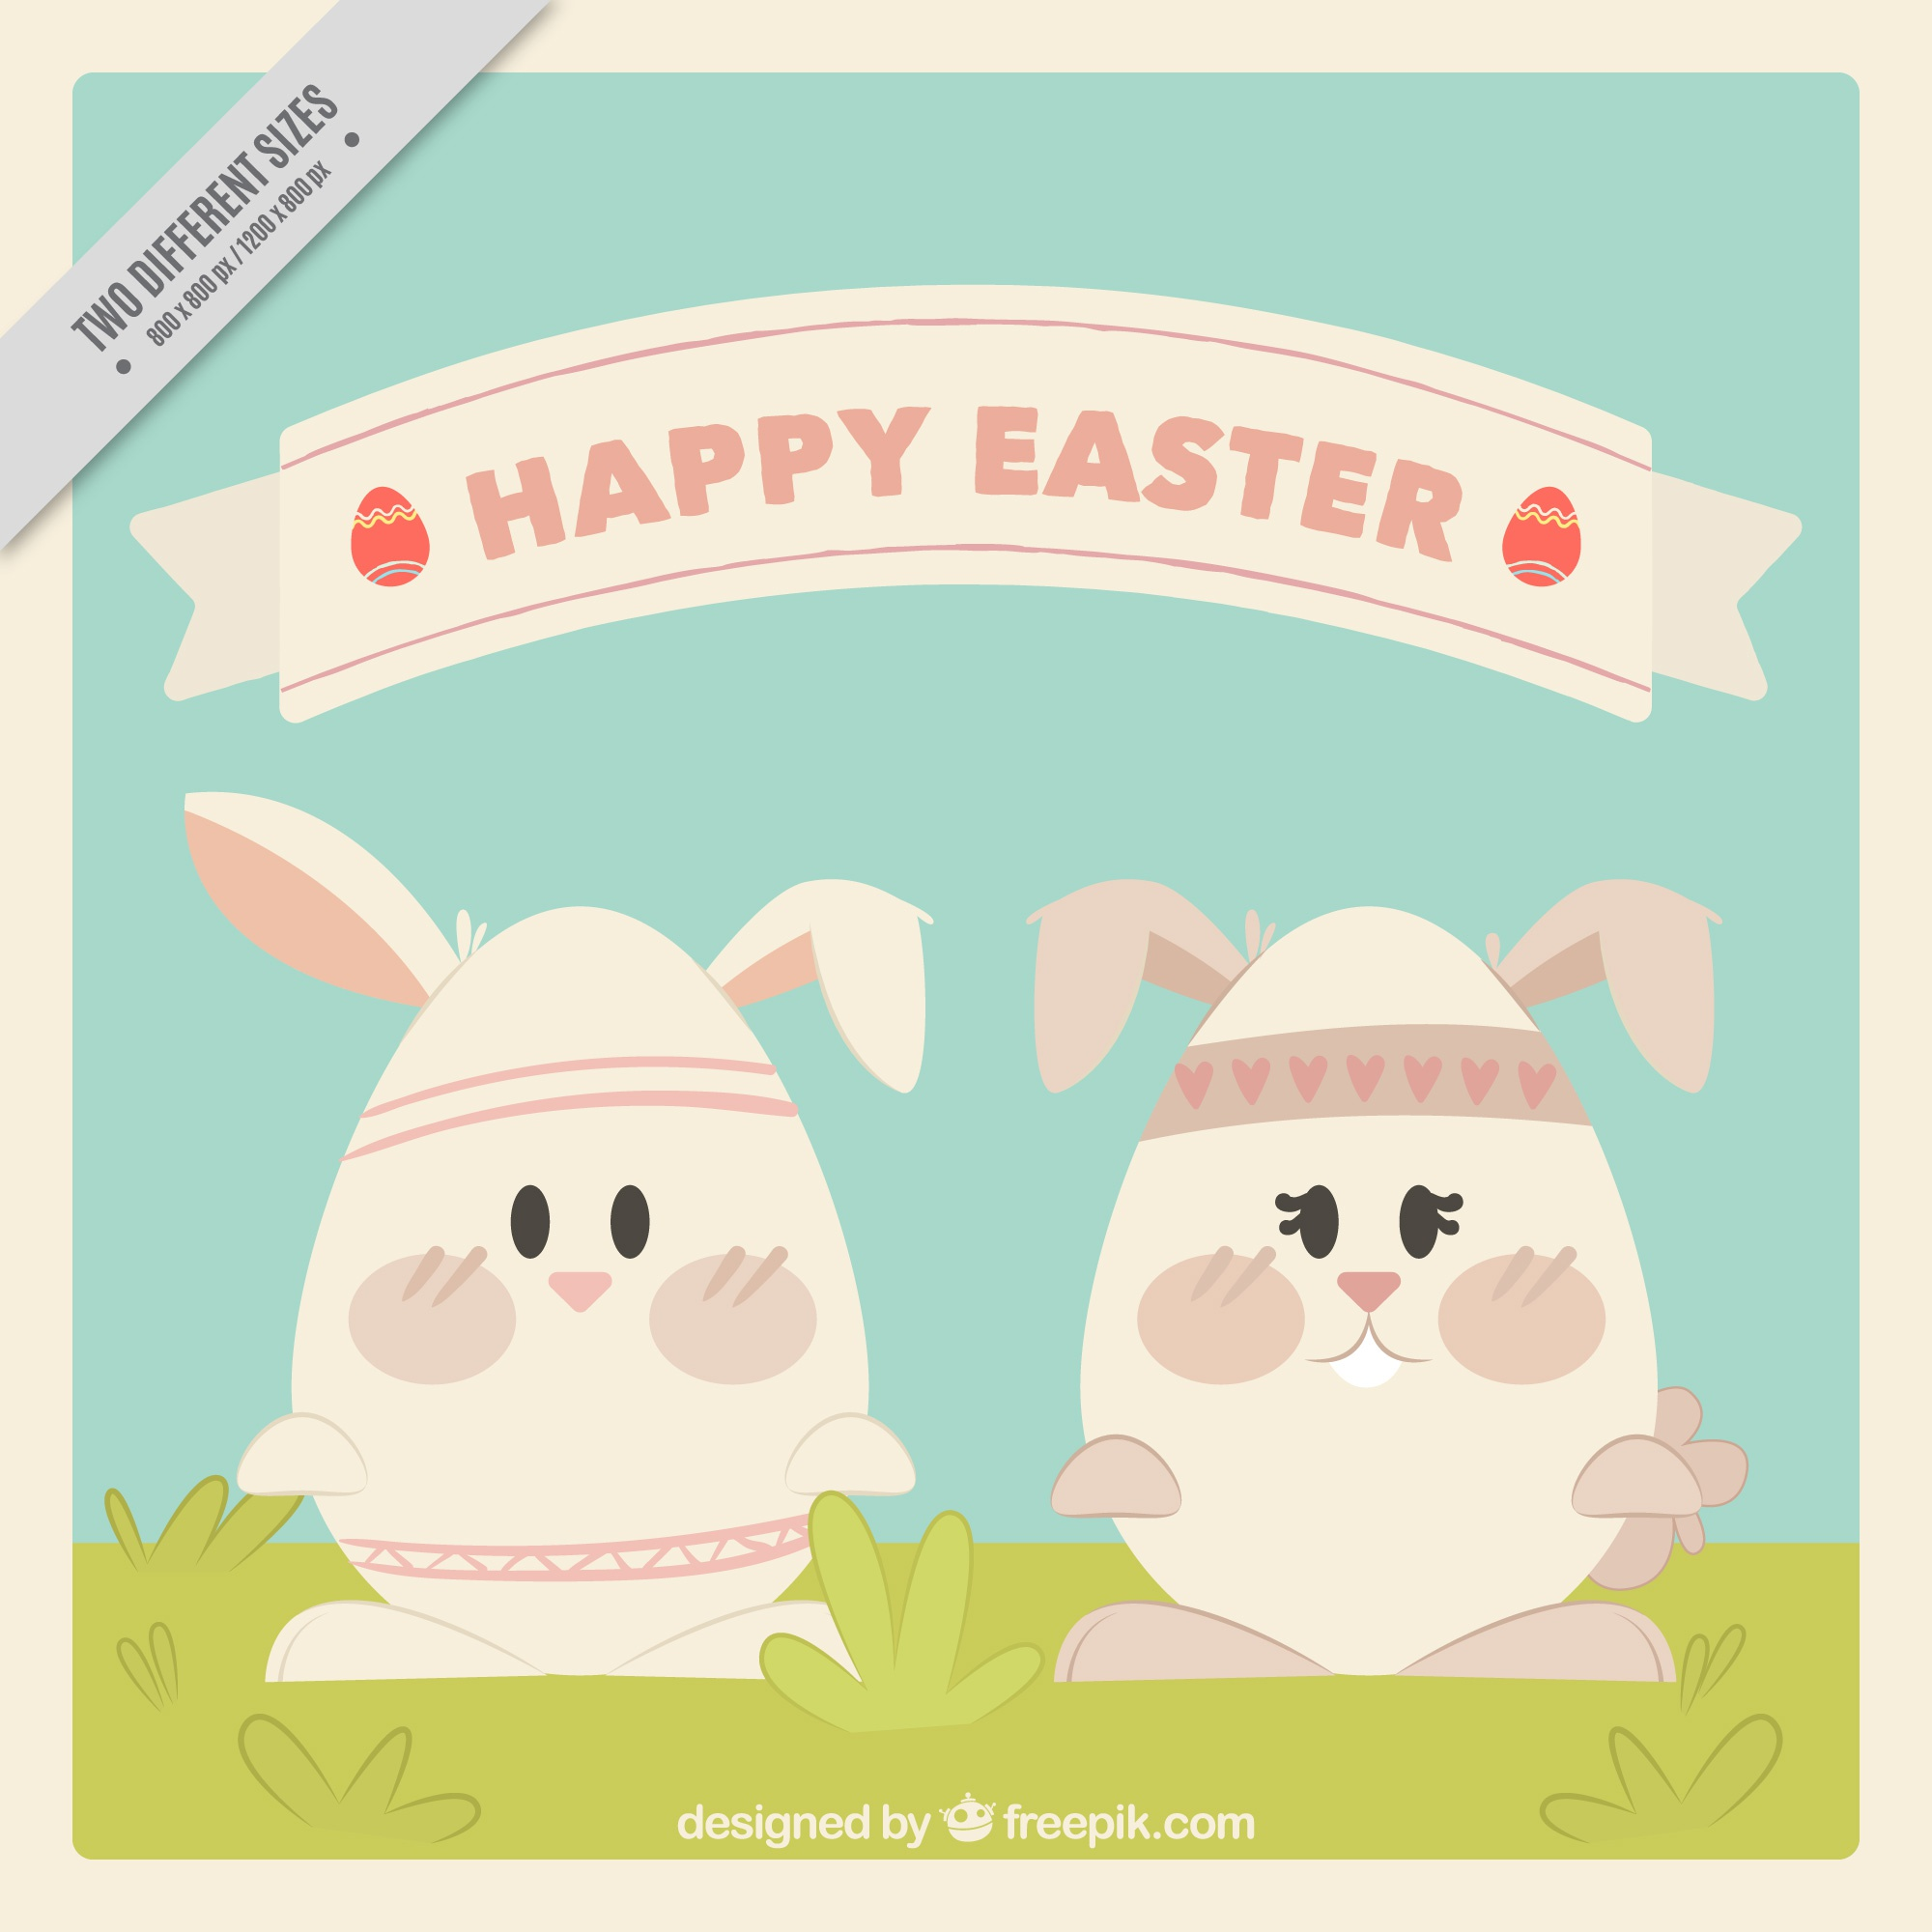 Great background of two easter rabbits with egg-shaped